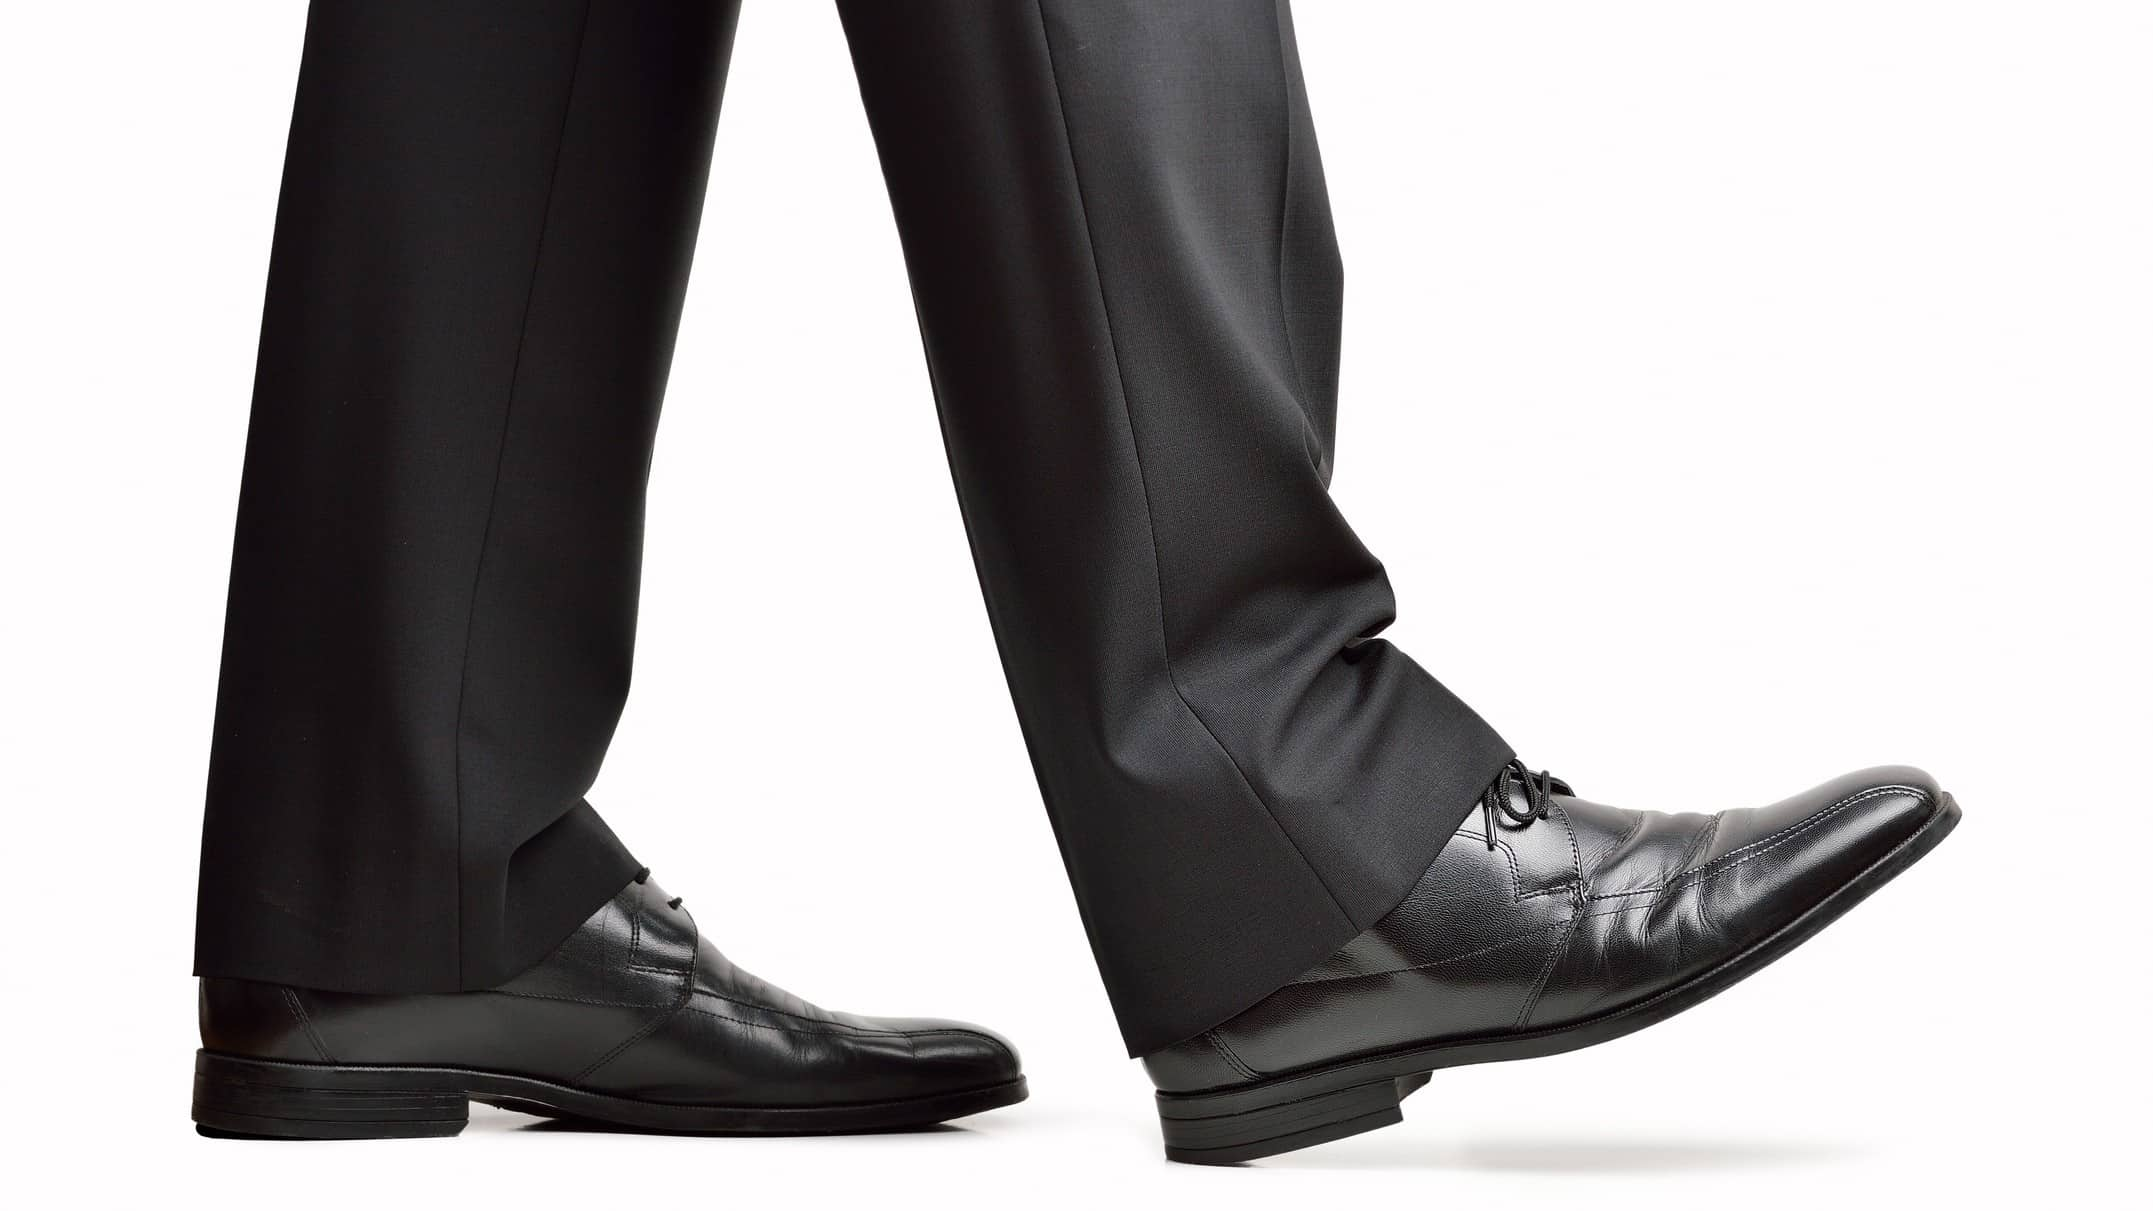 follow warren buffett when buying asx shares represented by business man's legs walking along